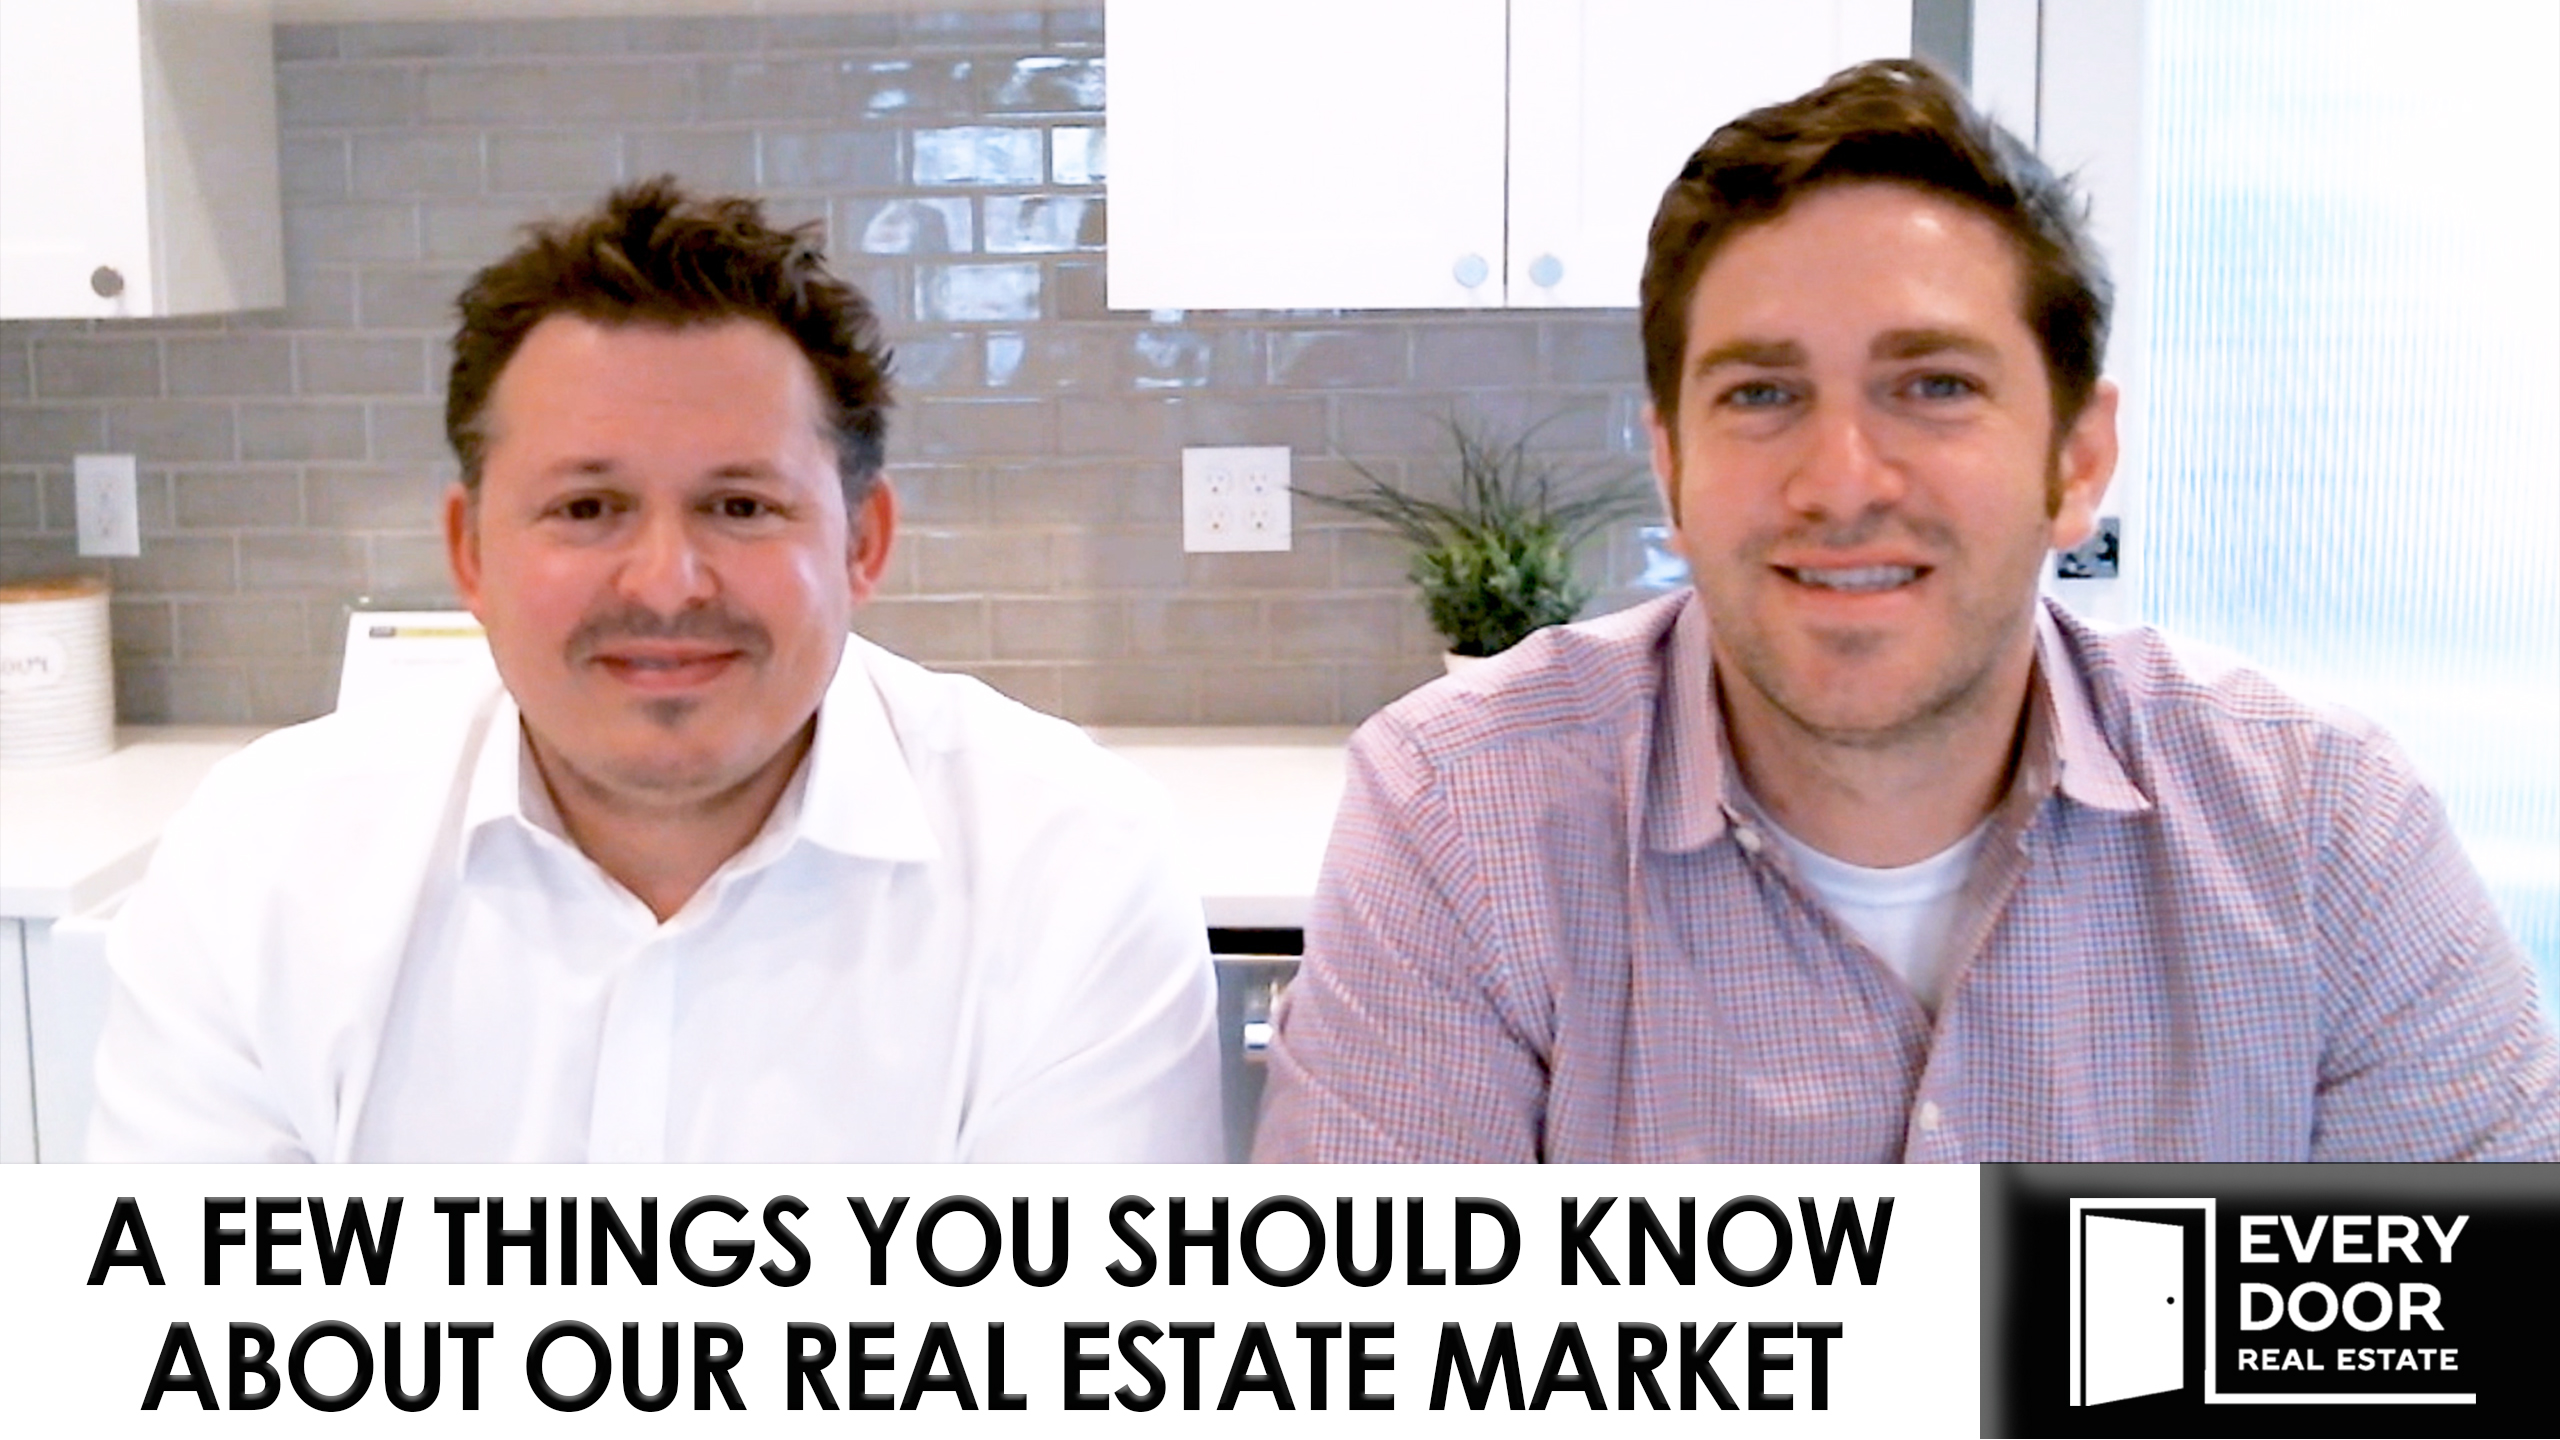 A Few Things You Should Know About Our Real Estate Market